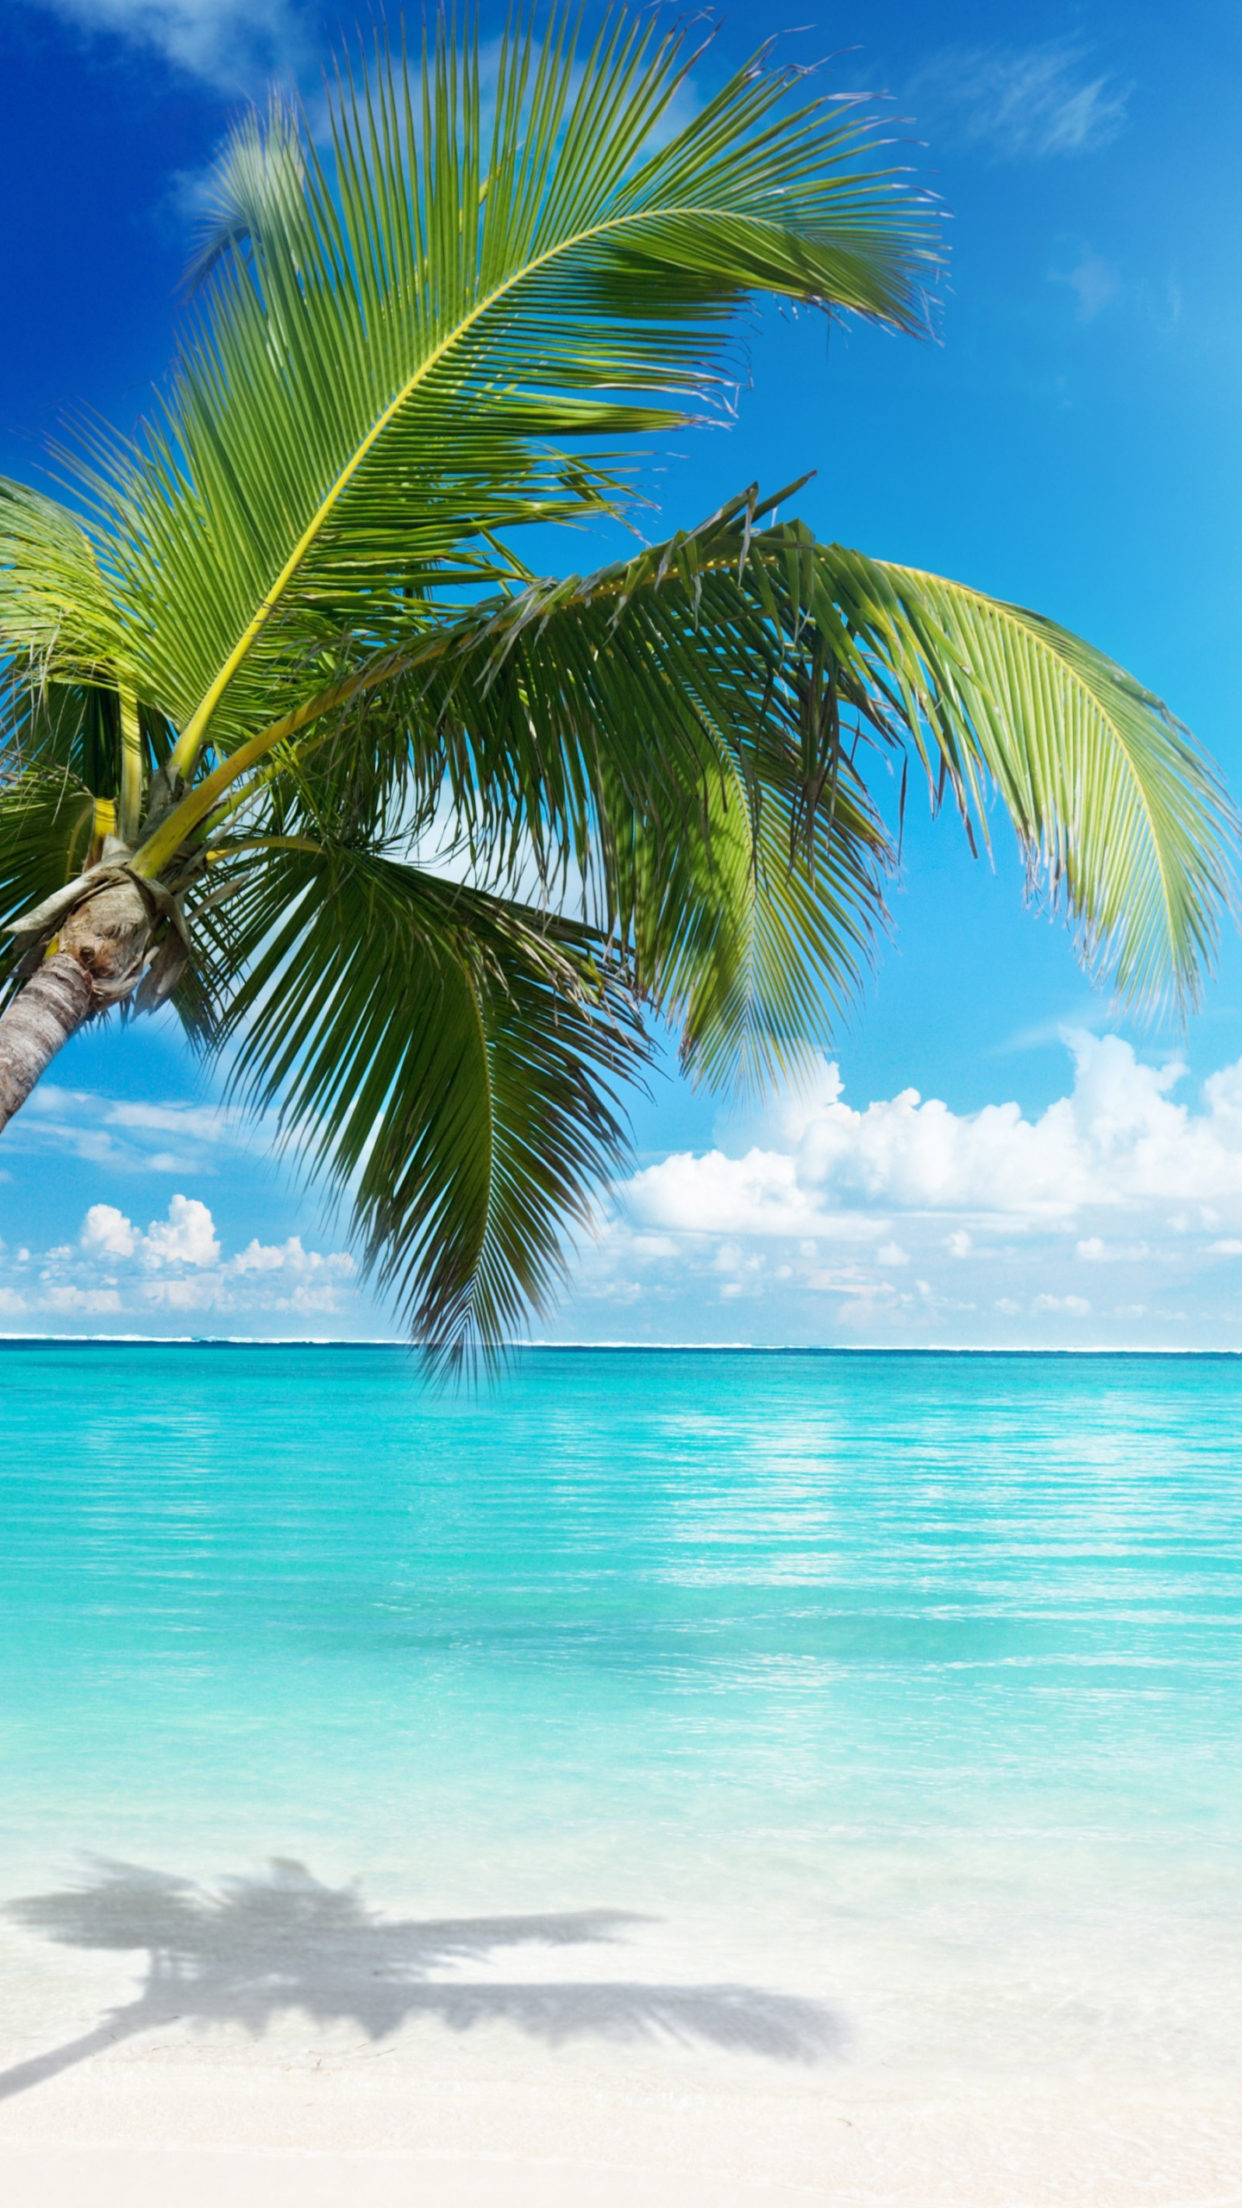 The Beach Amazing Nature Wallpaper Photos – HD Wallpapers Backgrounds Desktop, iphone & Android Free Download